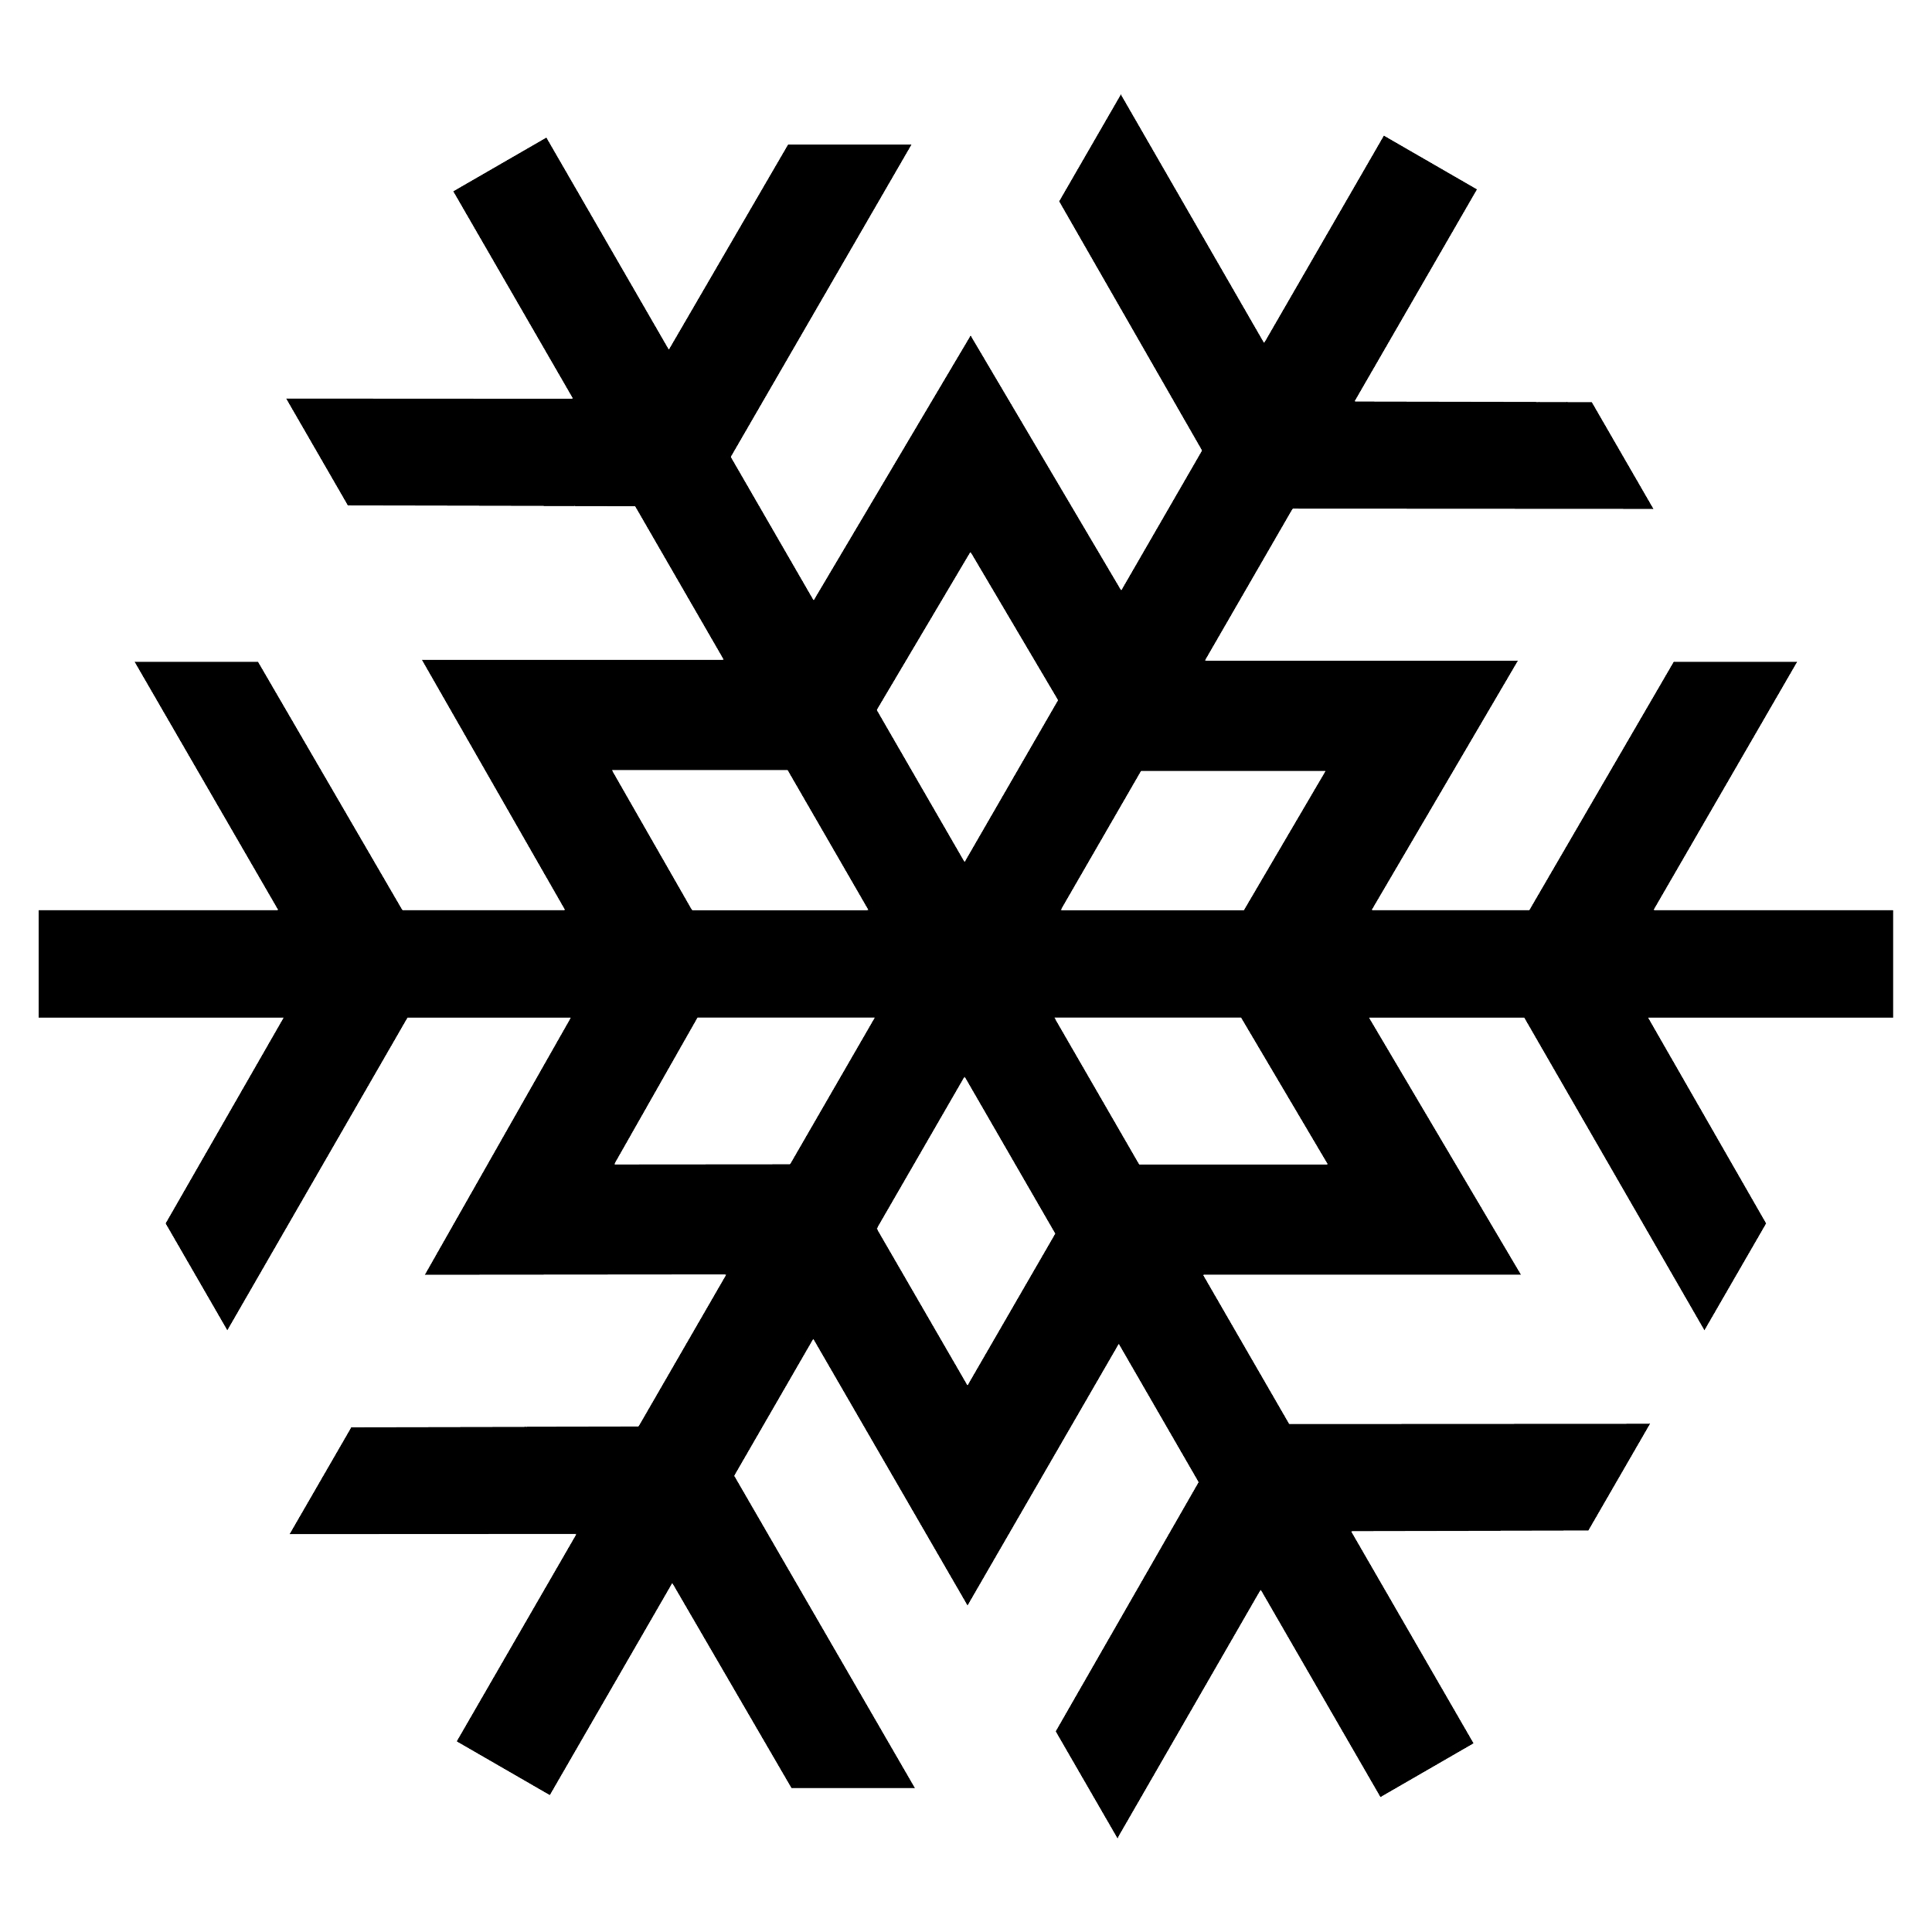 snowflake silhouette - Google Search | shapes - line ... Christmas Snowflake Silhouette